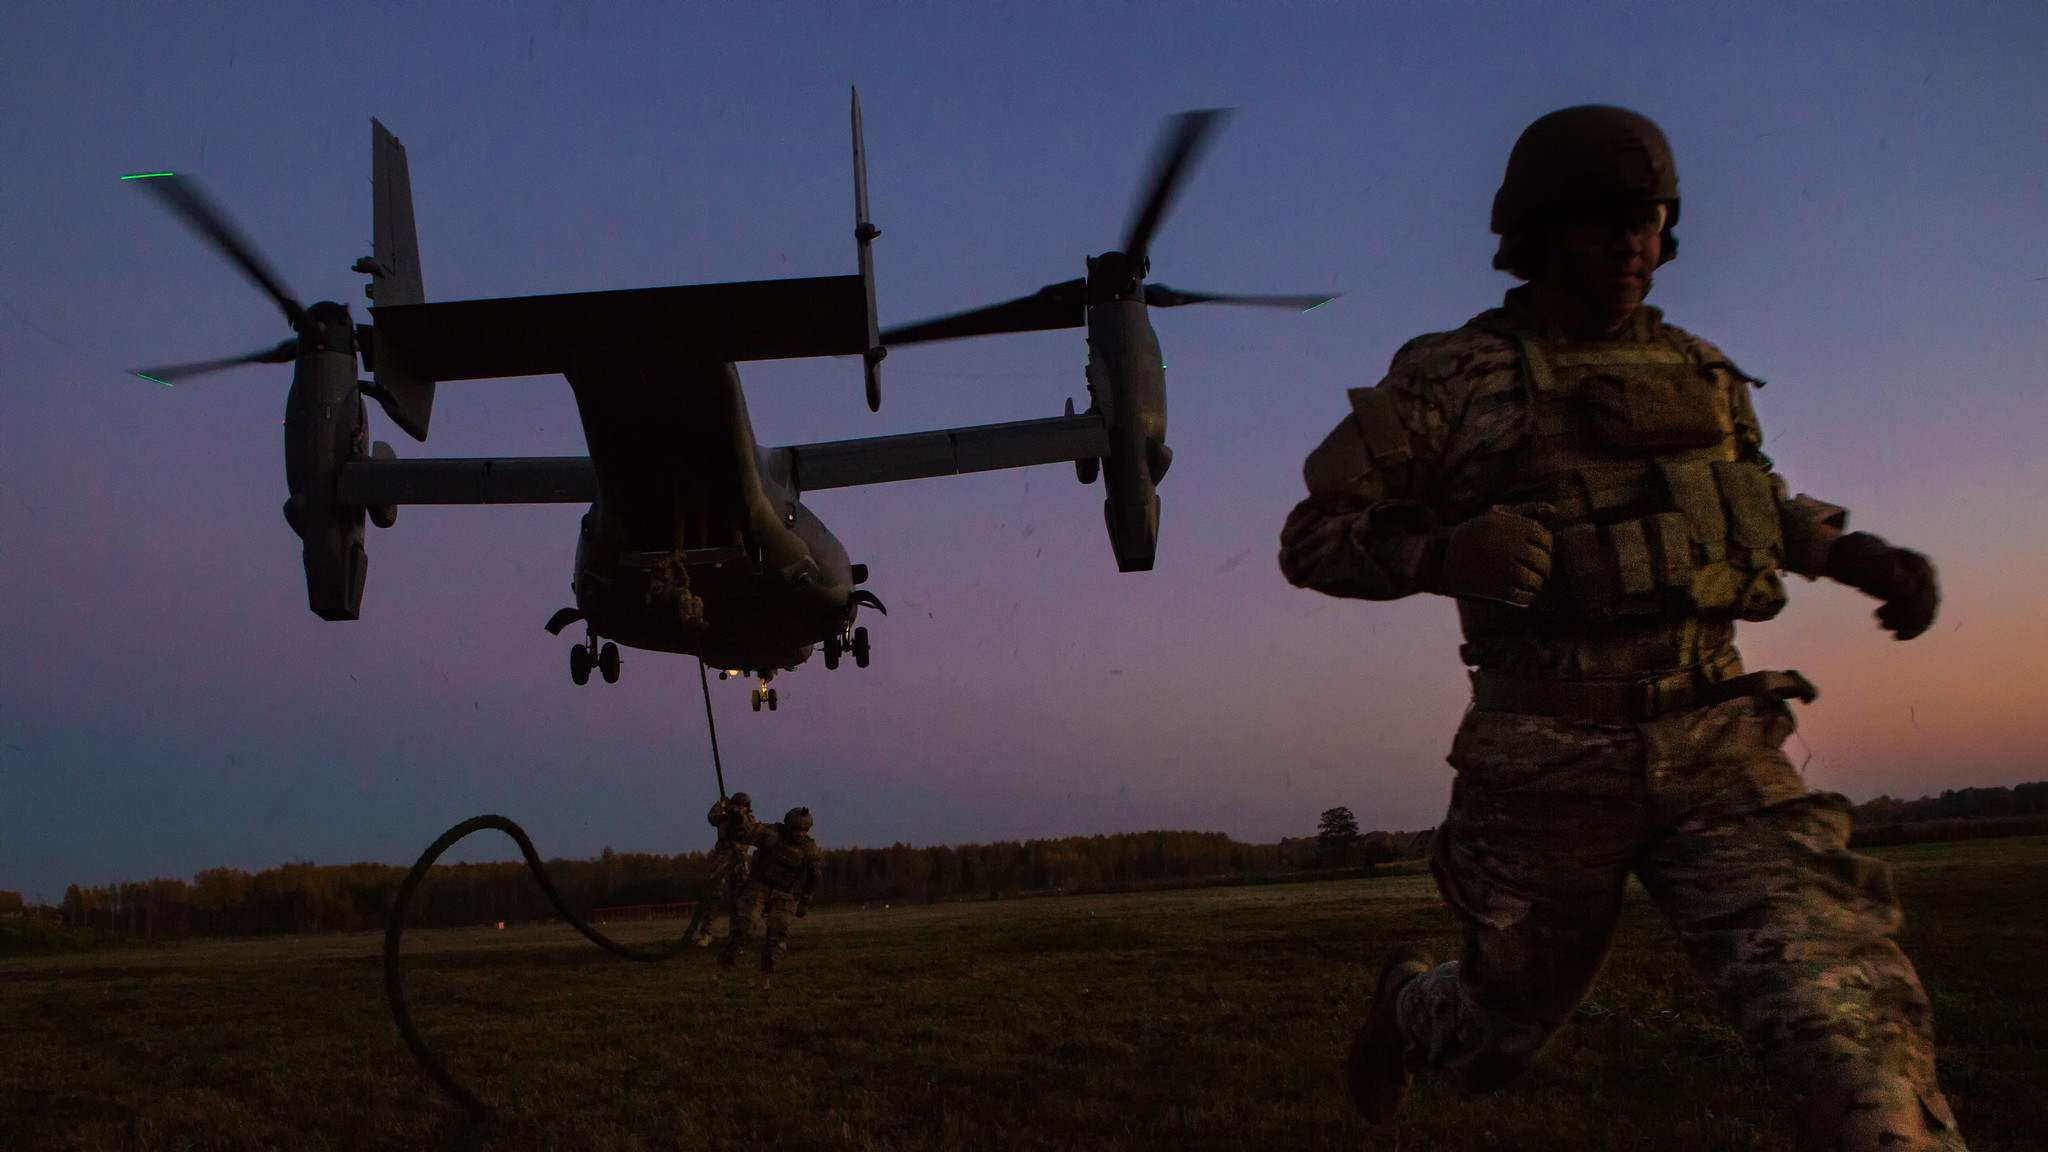 Photo: U.S. Special Forces fast-rope from Ospreys in Latvia. Credit: NATO